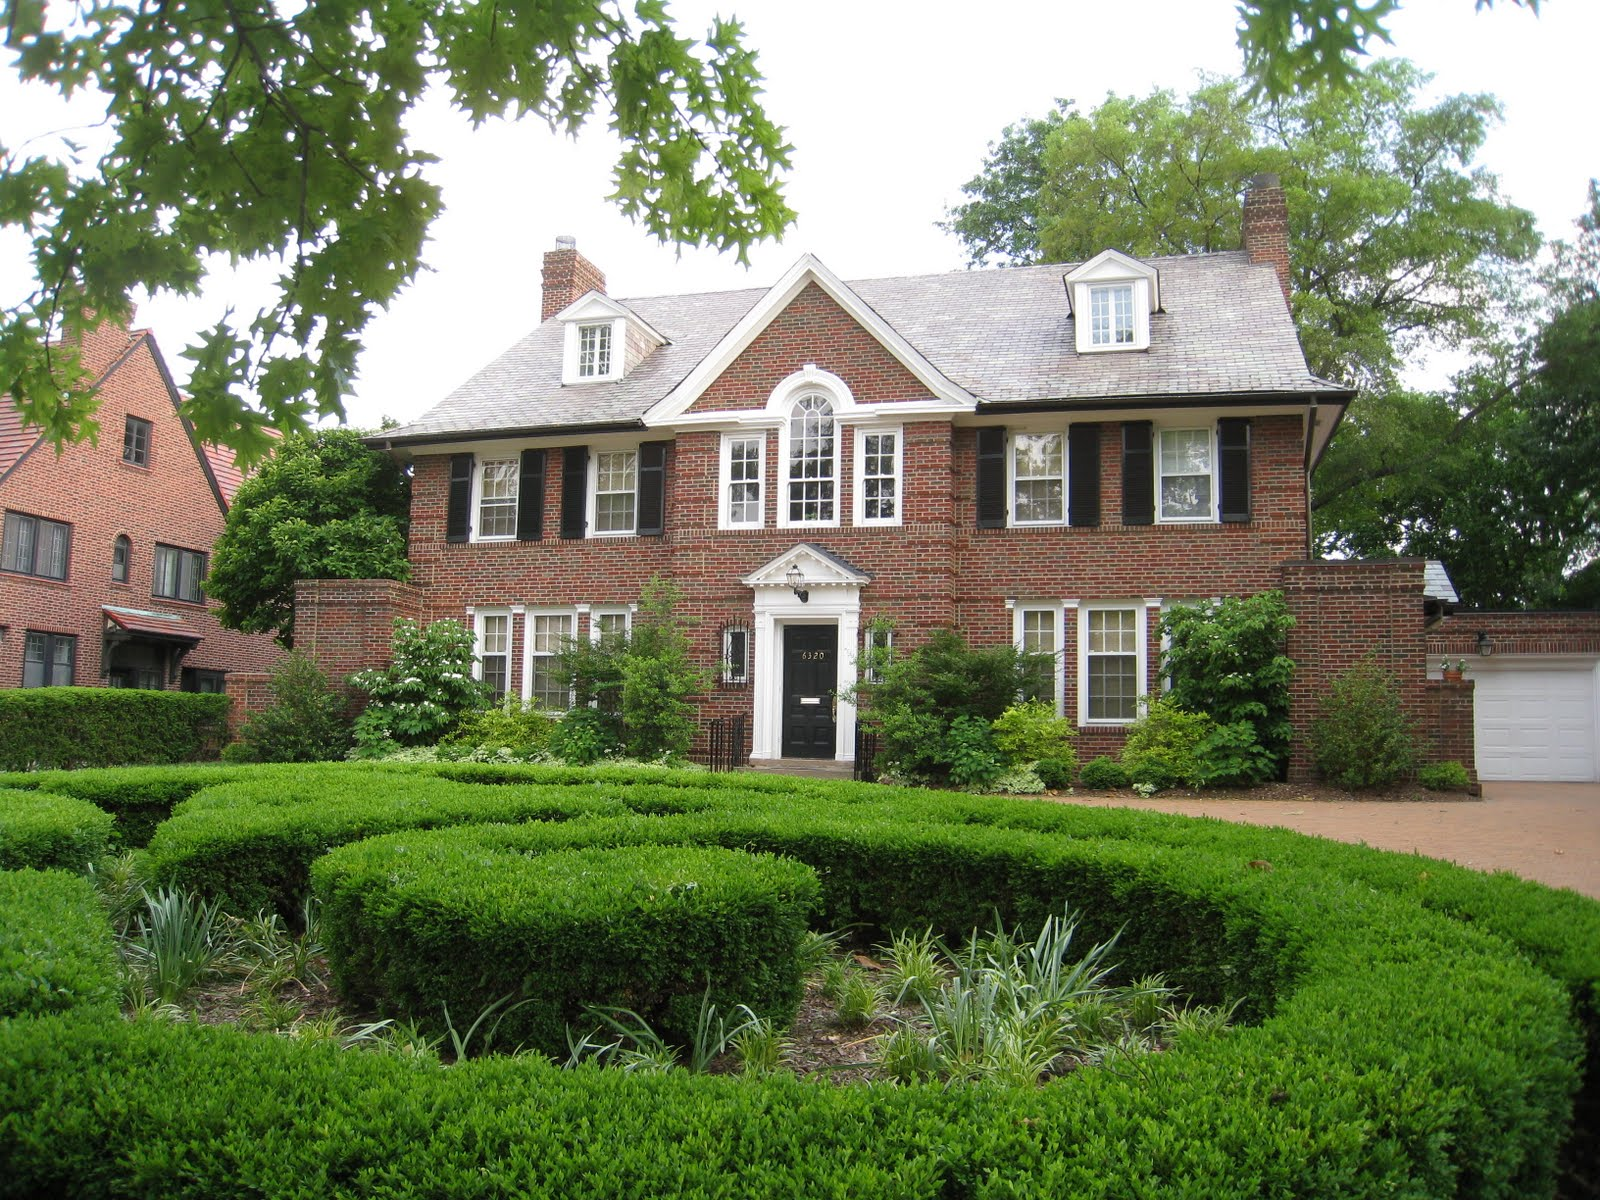 The Price Family residence in St Louis MO